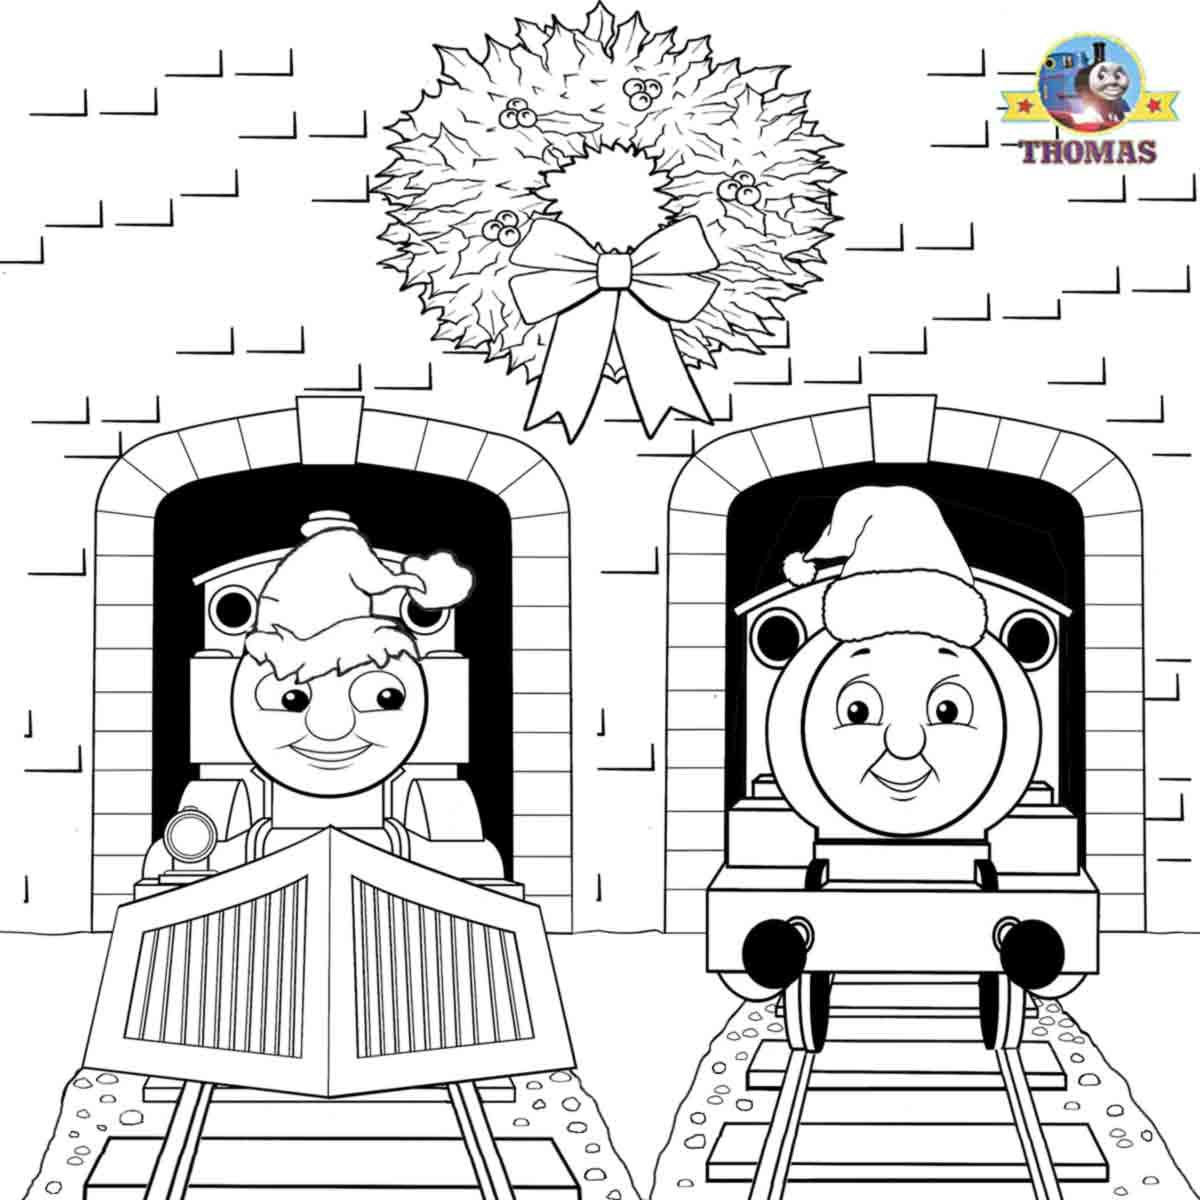 Santa Hat Coloring Page Train Thomas the tank engine Friends free ...